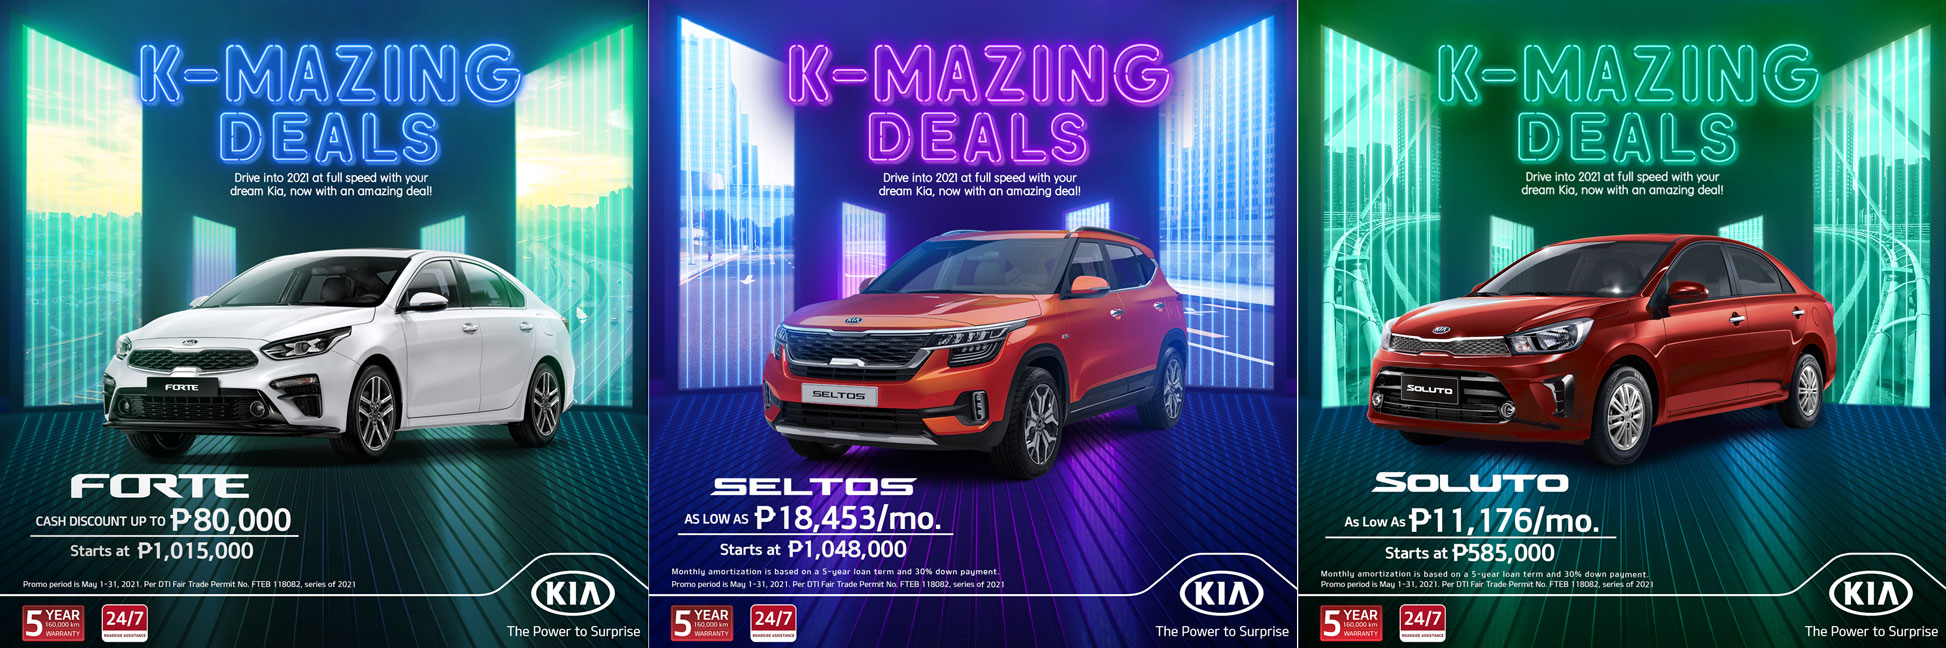 Kia PH's promotional posters offering reduced pricing for the Forte, Seltos, Soluto